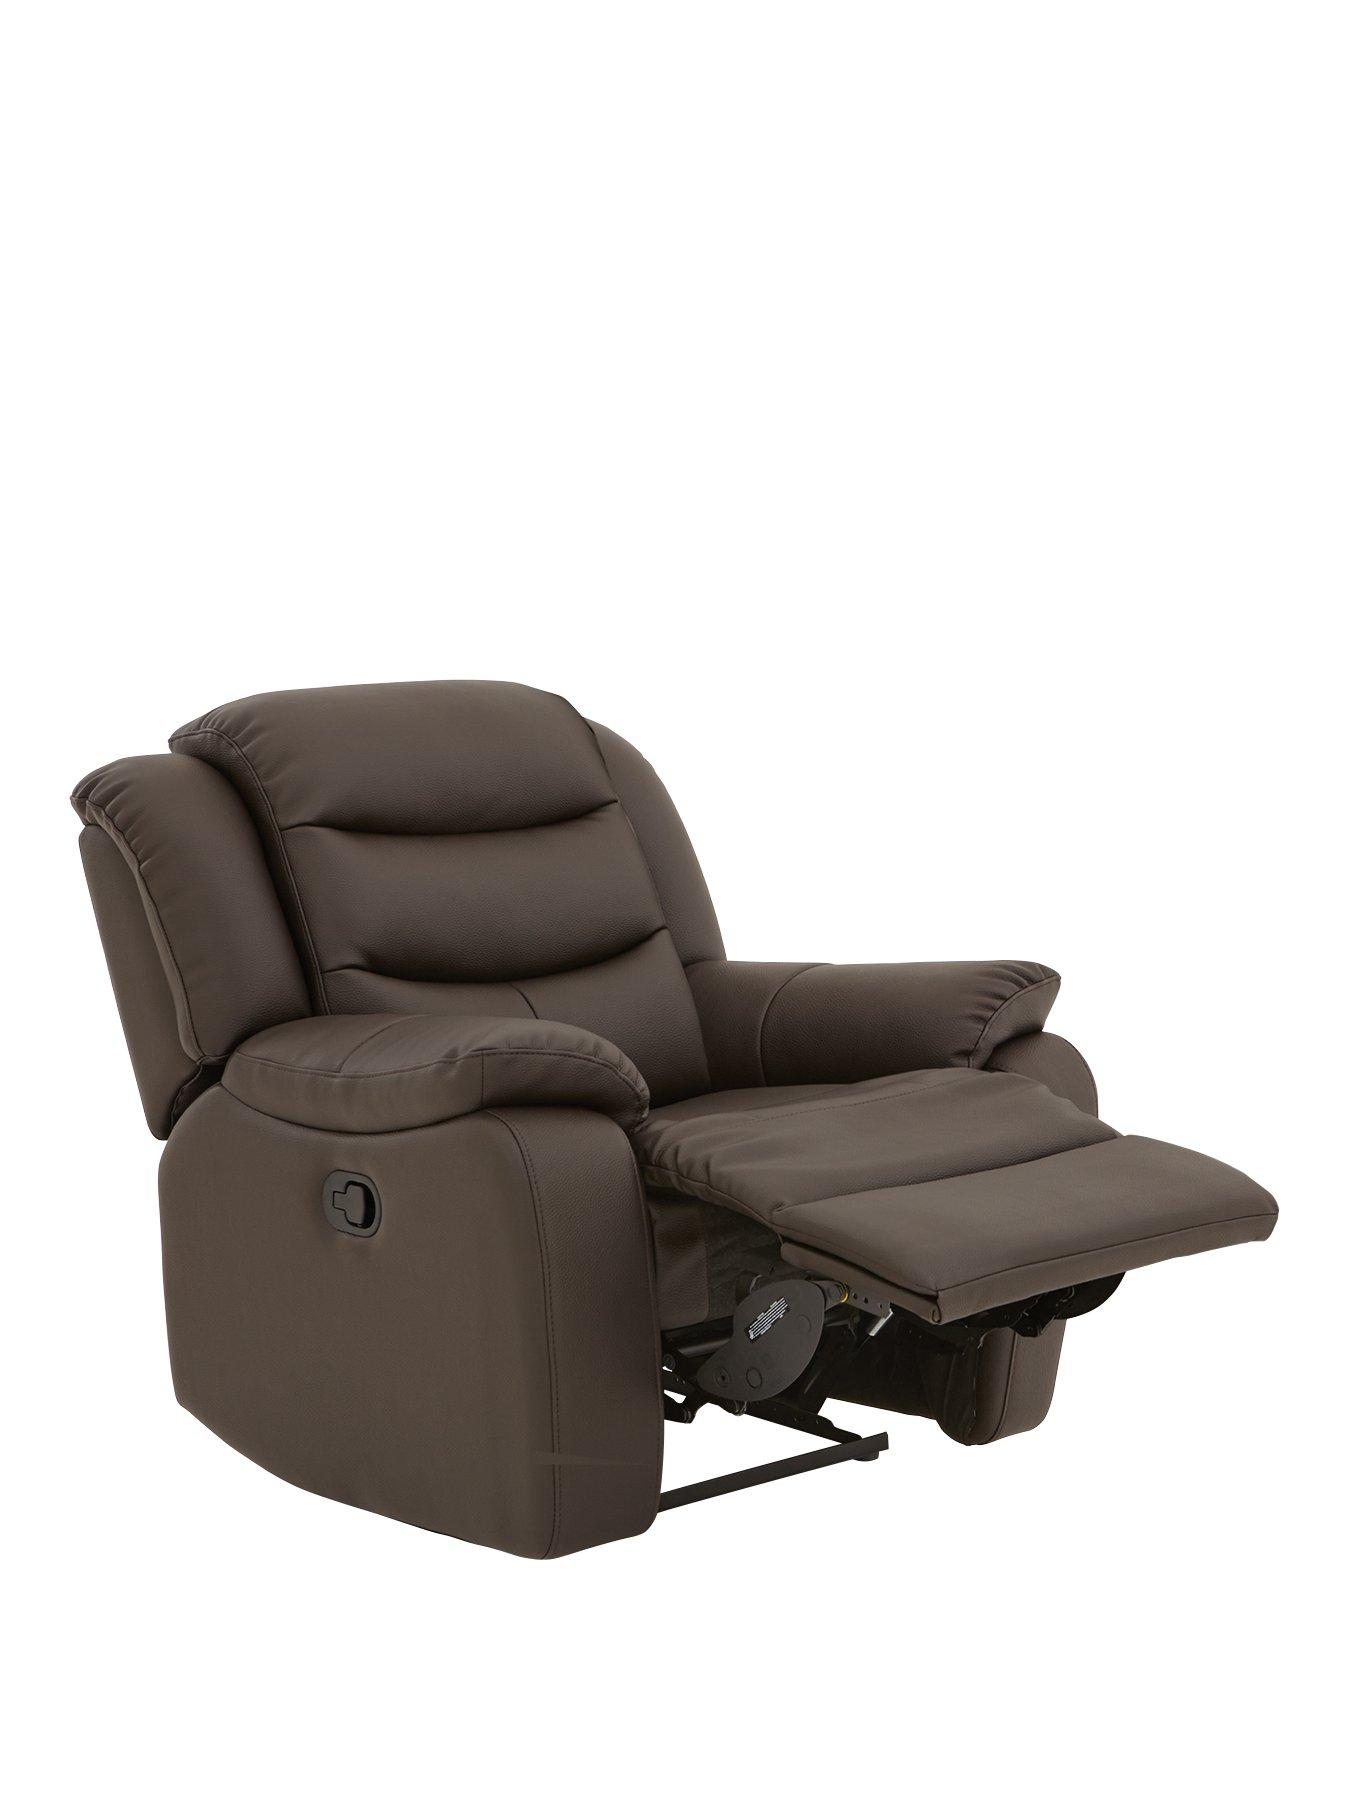 recliner chairs uk beach and umbrella armchairs home garden www very co rothbury luxury faux leather manual armchair